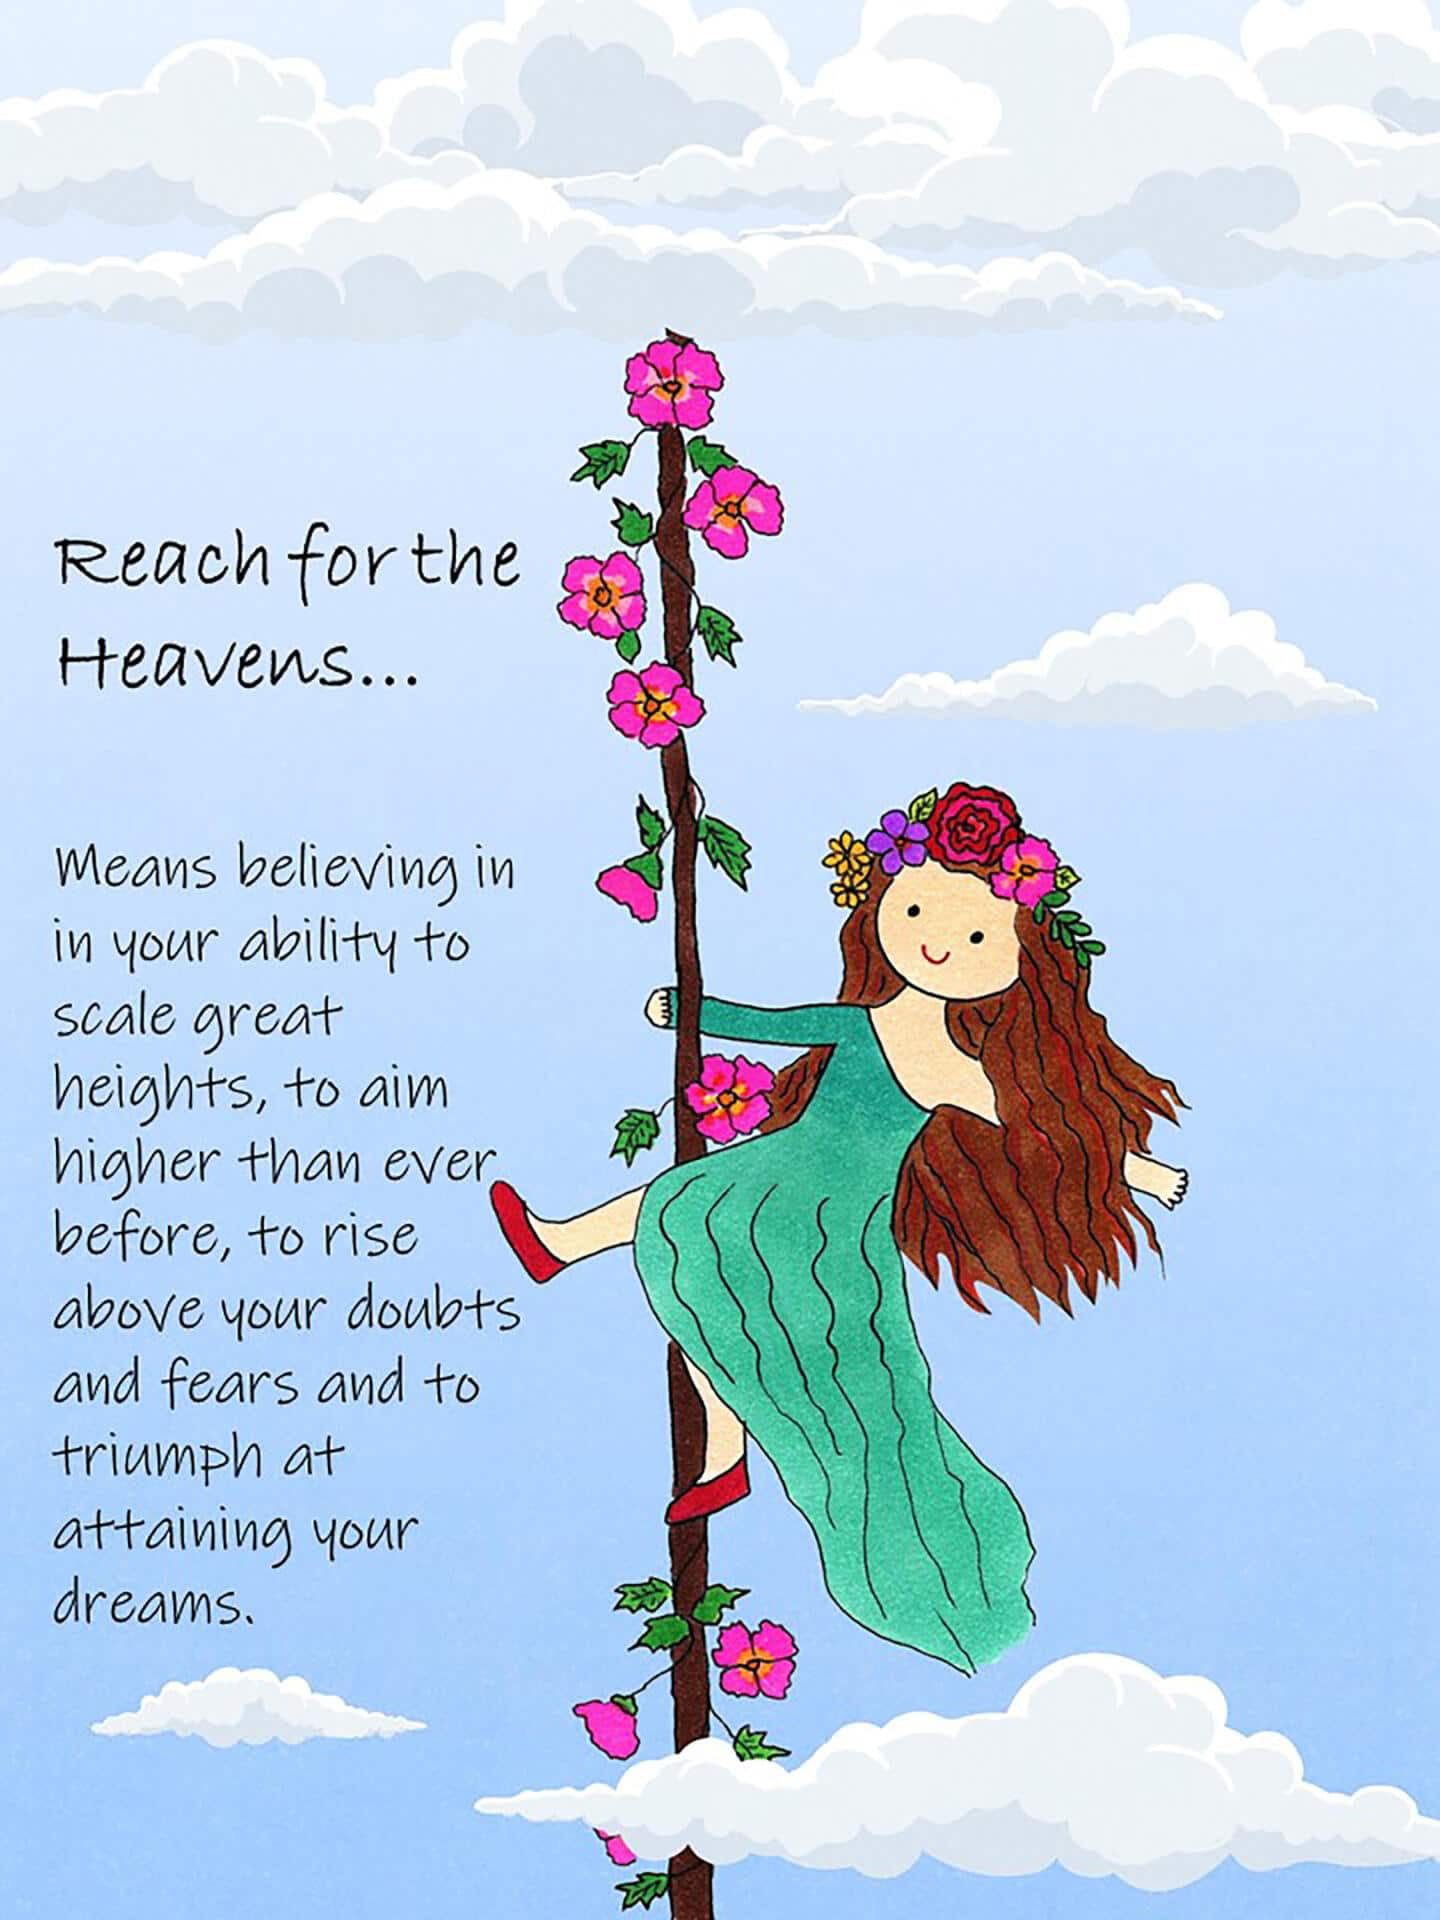 Reach for the Heavens eCard